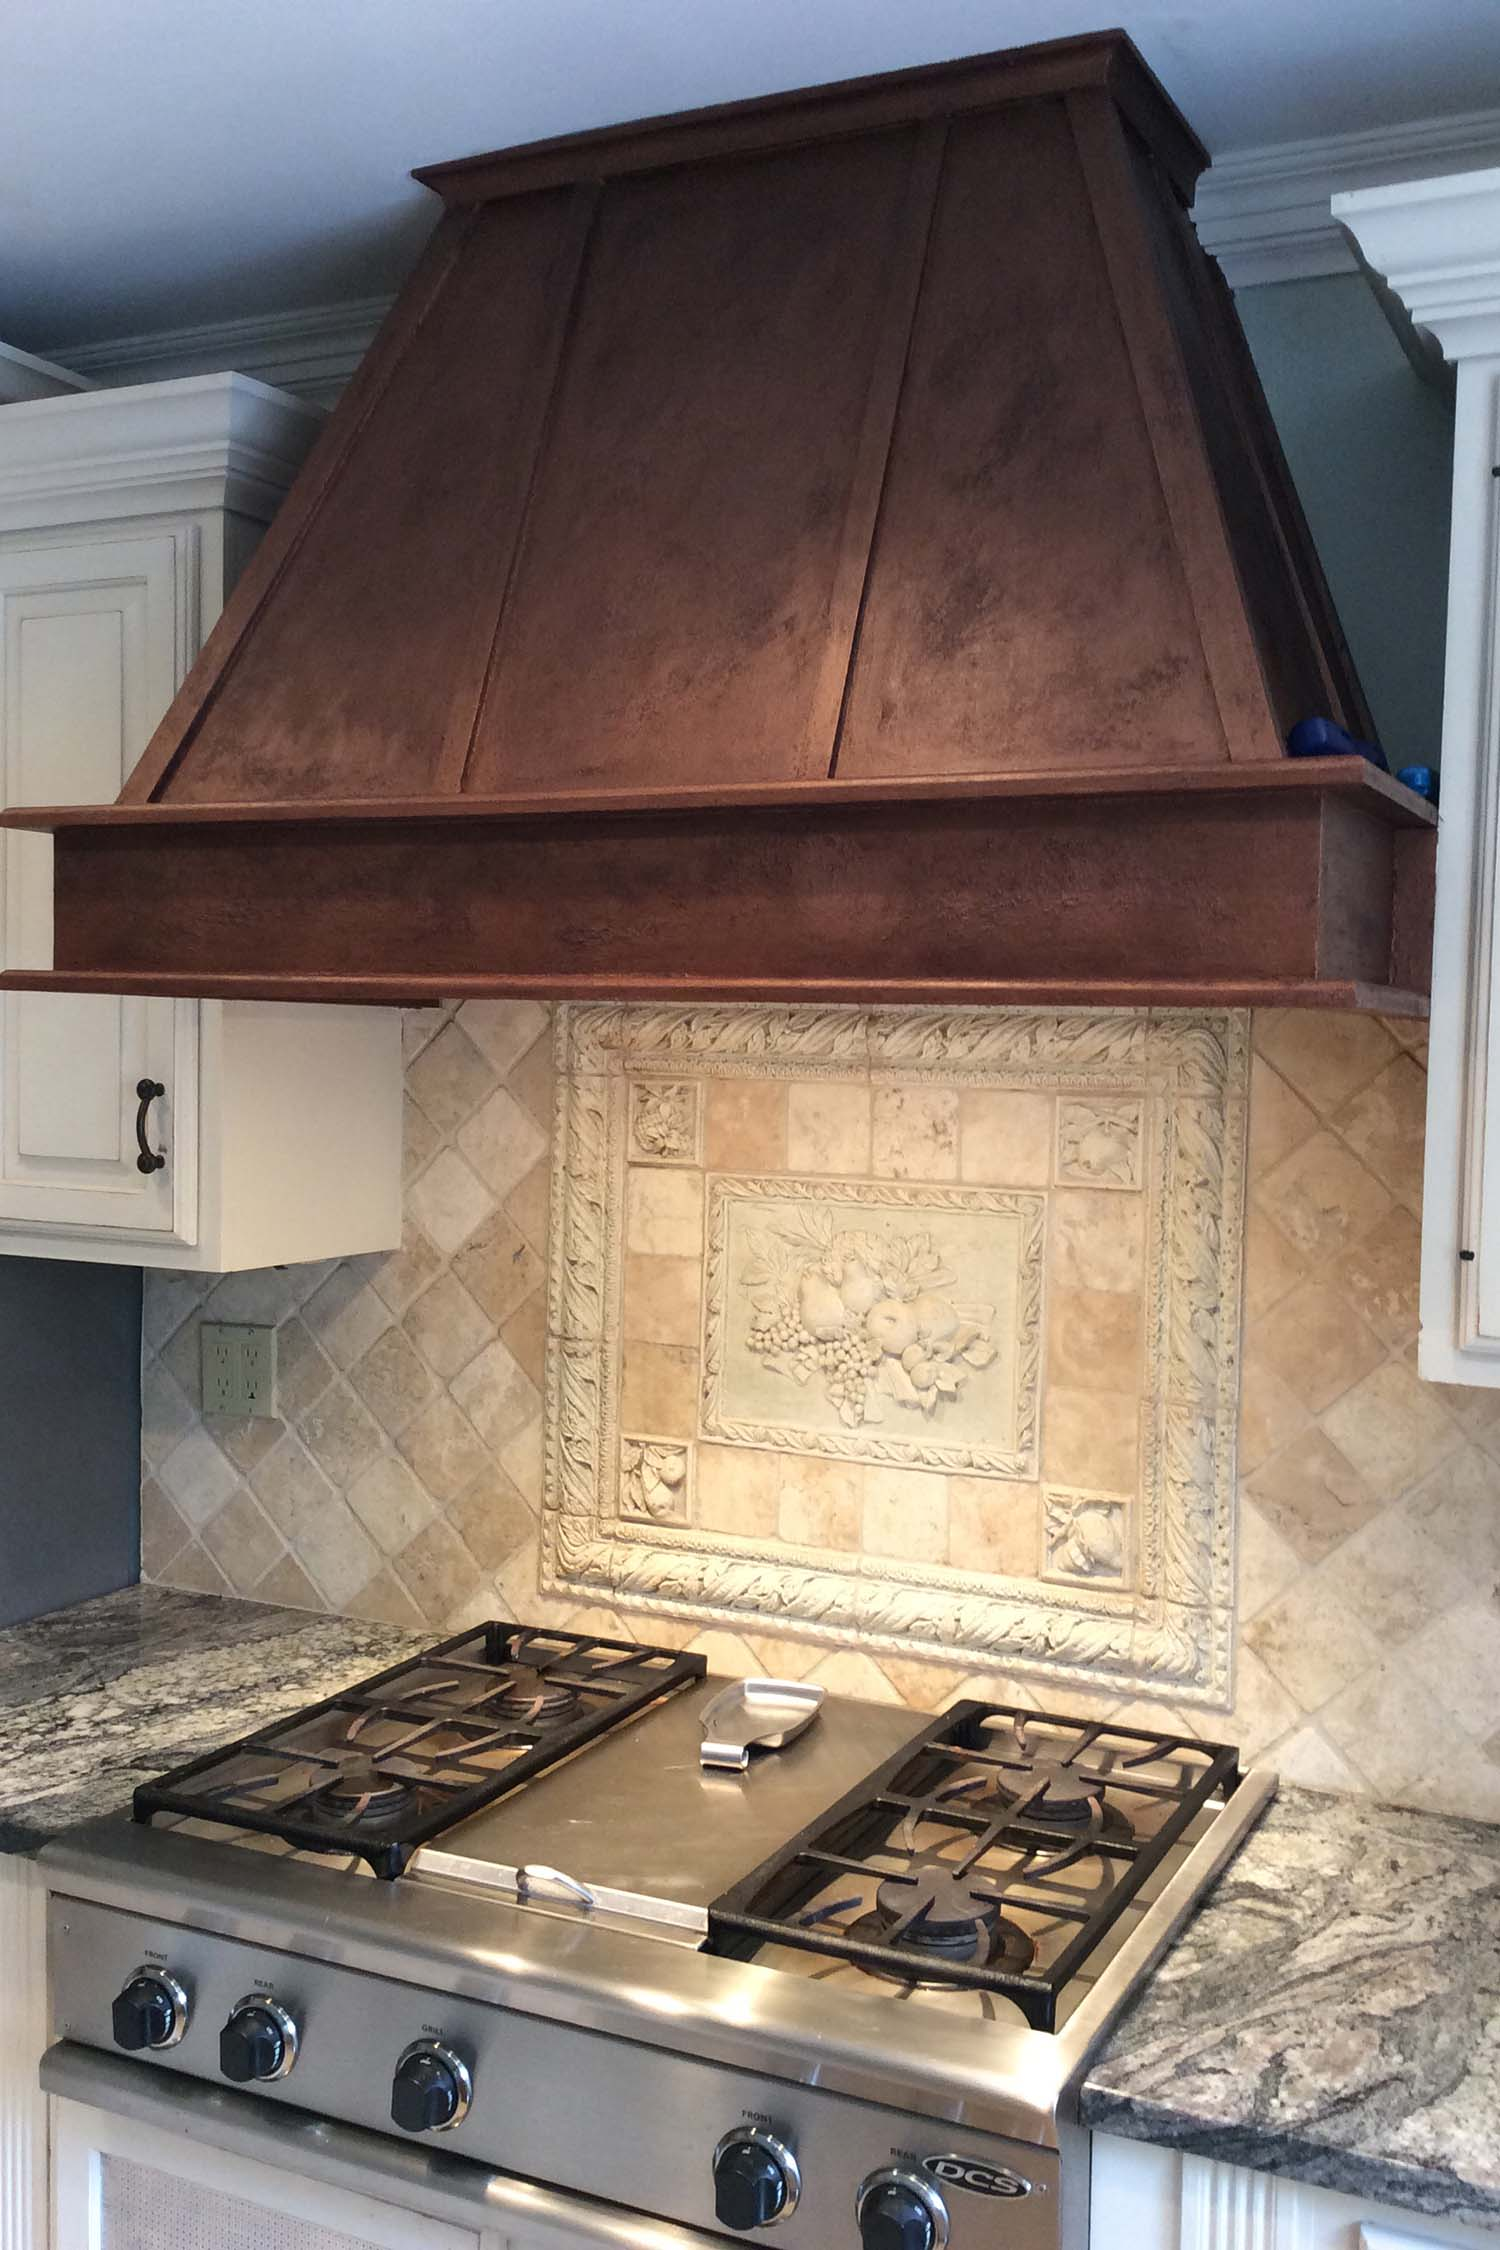 Painted Copper Range Hood / Residential